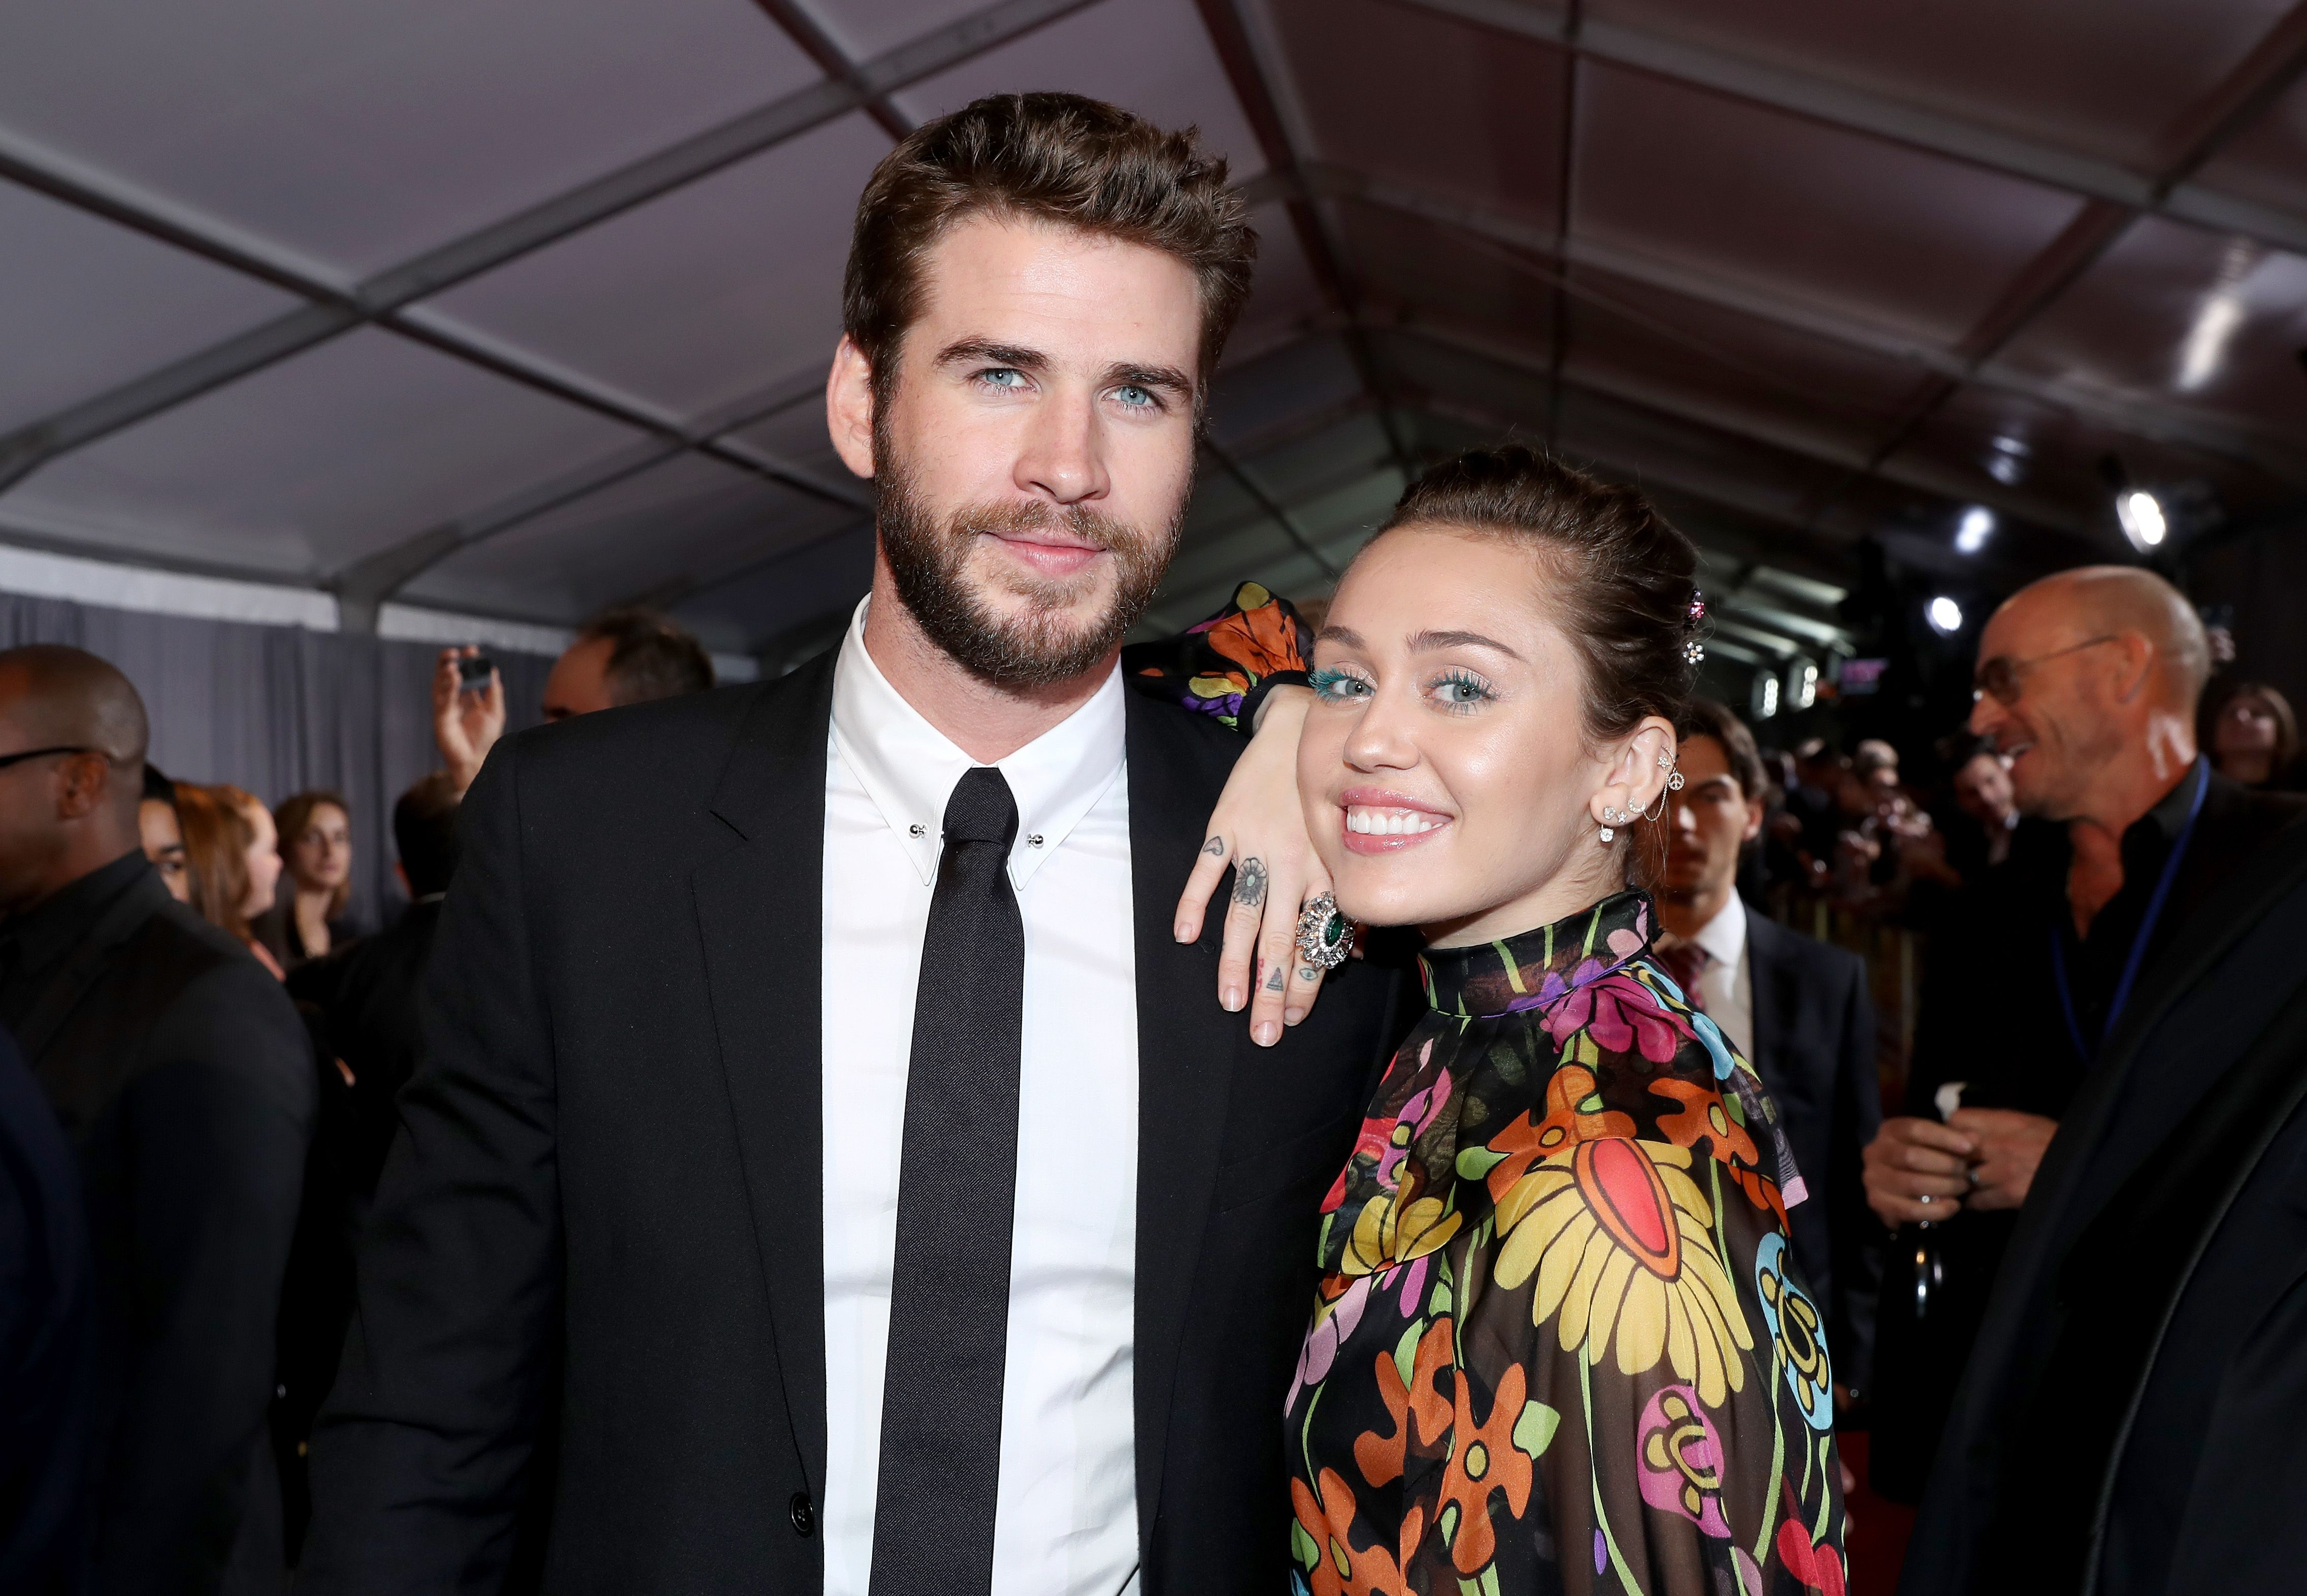 Liam Hemsworth Responds to His Split from Miley Cyrus with a Heartbreaking Comment